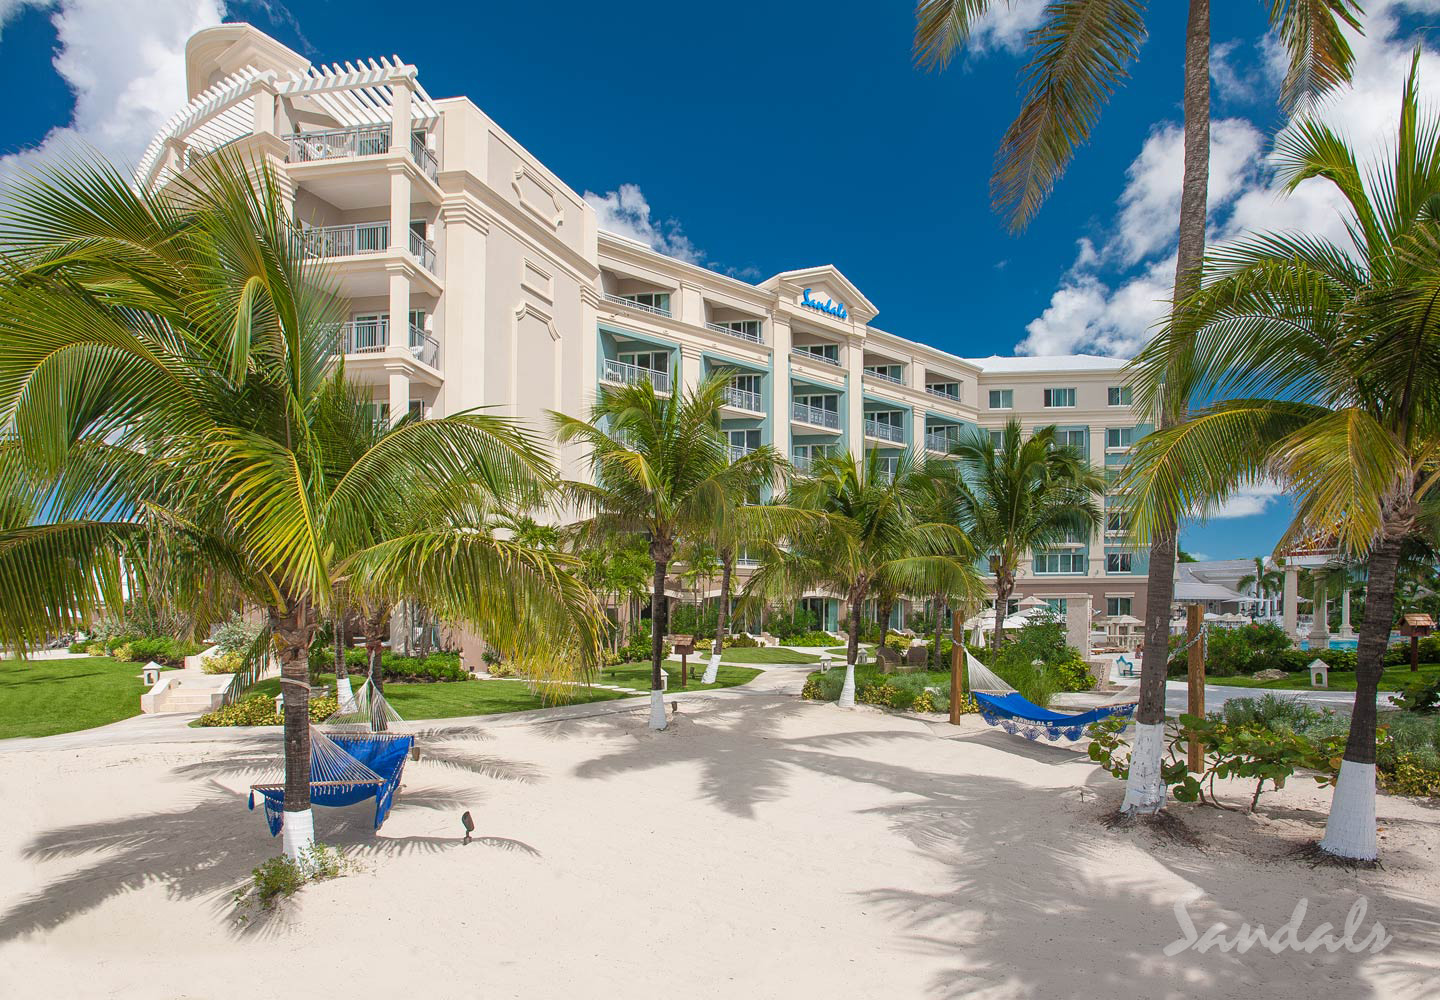 Travel Agency All-Inclusive Resort Sandals Royal Bahamian 099